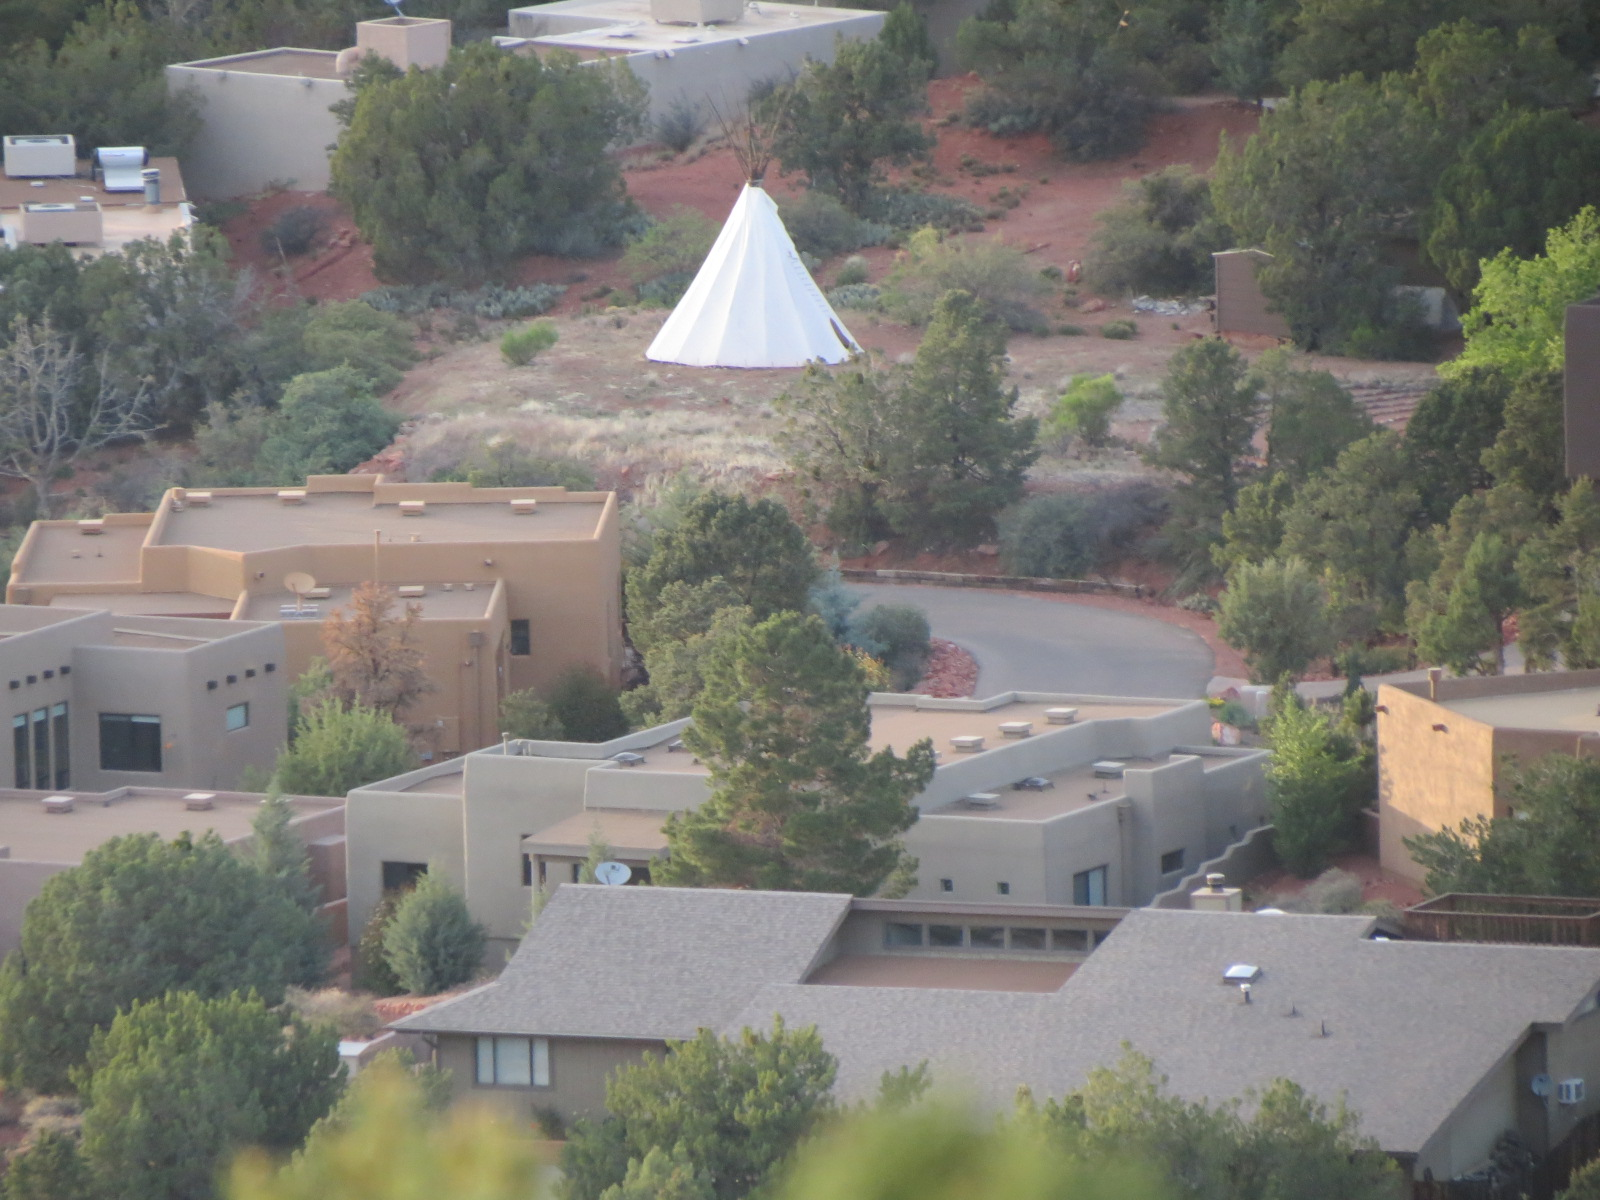 What's this Teepee doing in the middle of the subdivision?